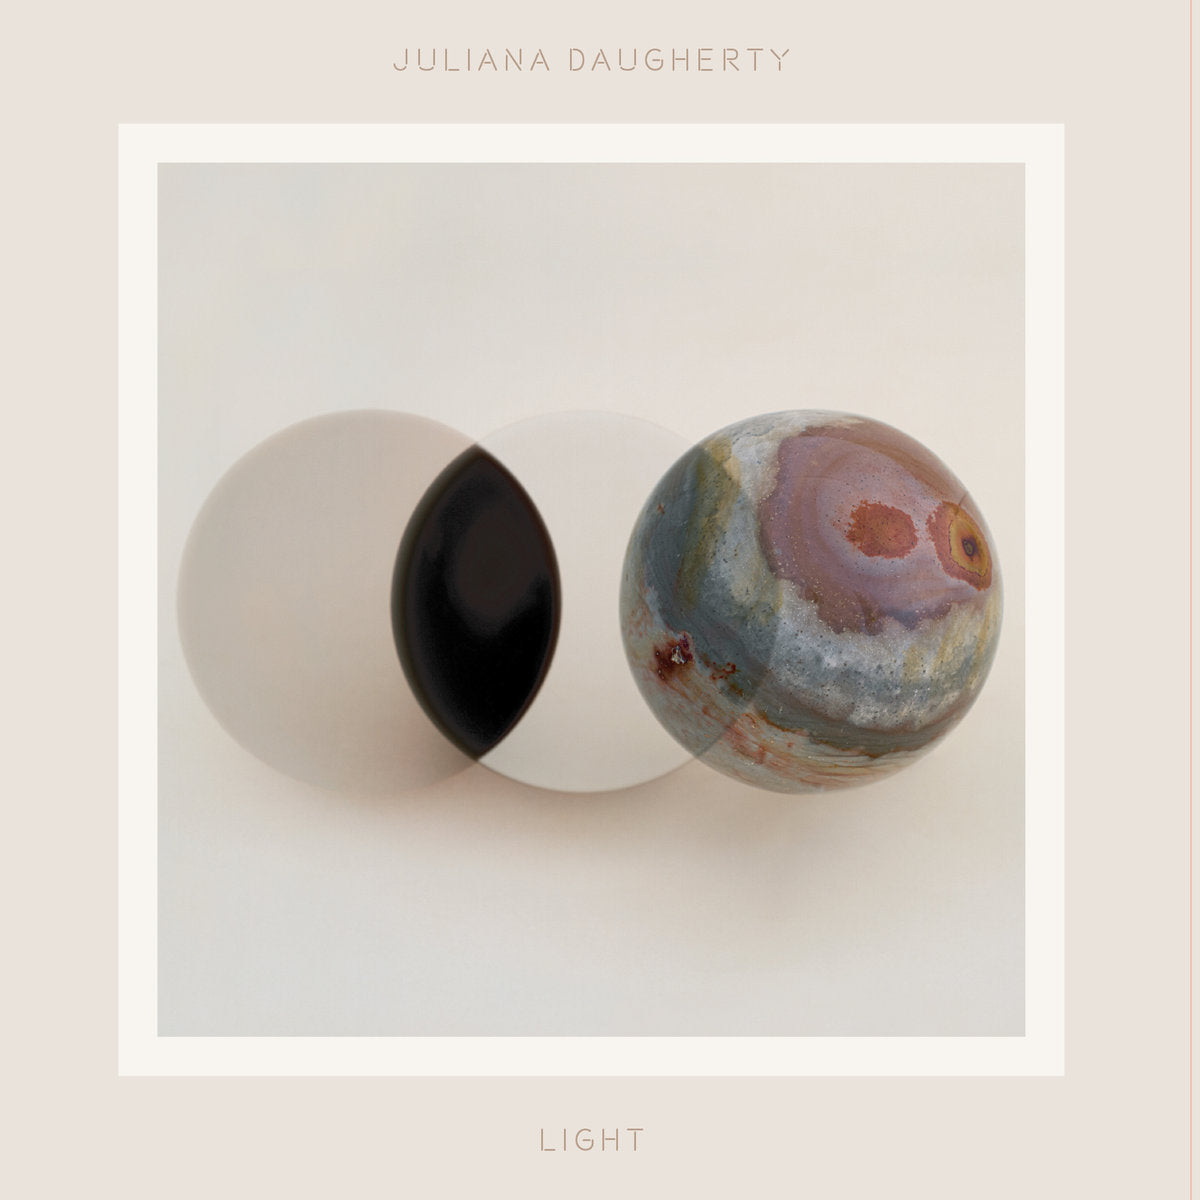 Juliana Daugherty - Light LP